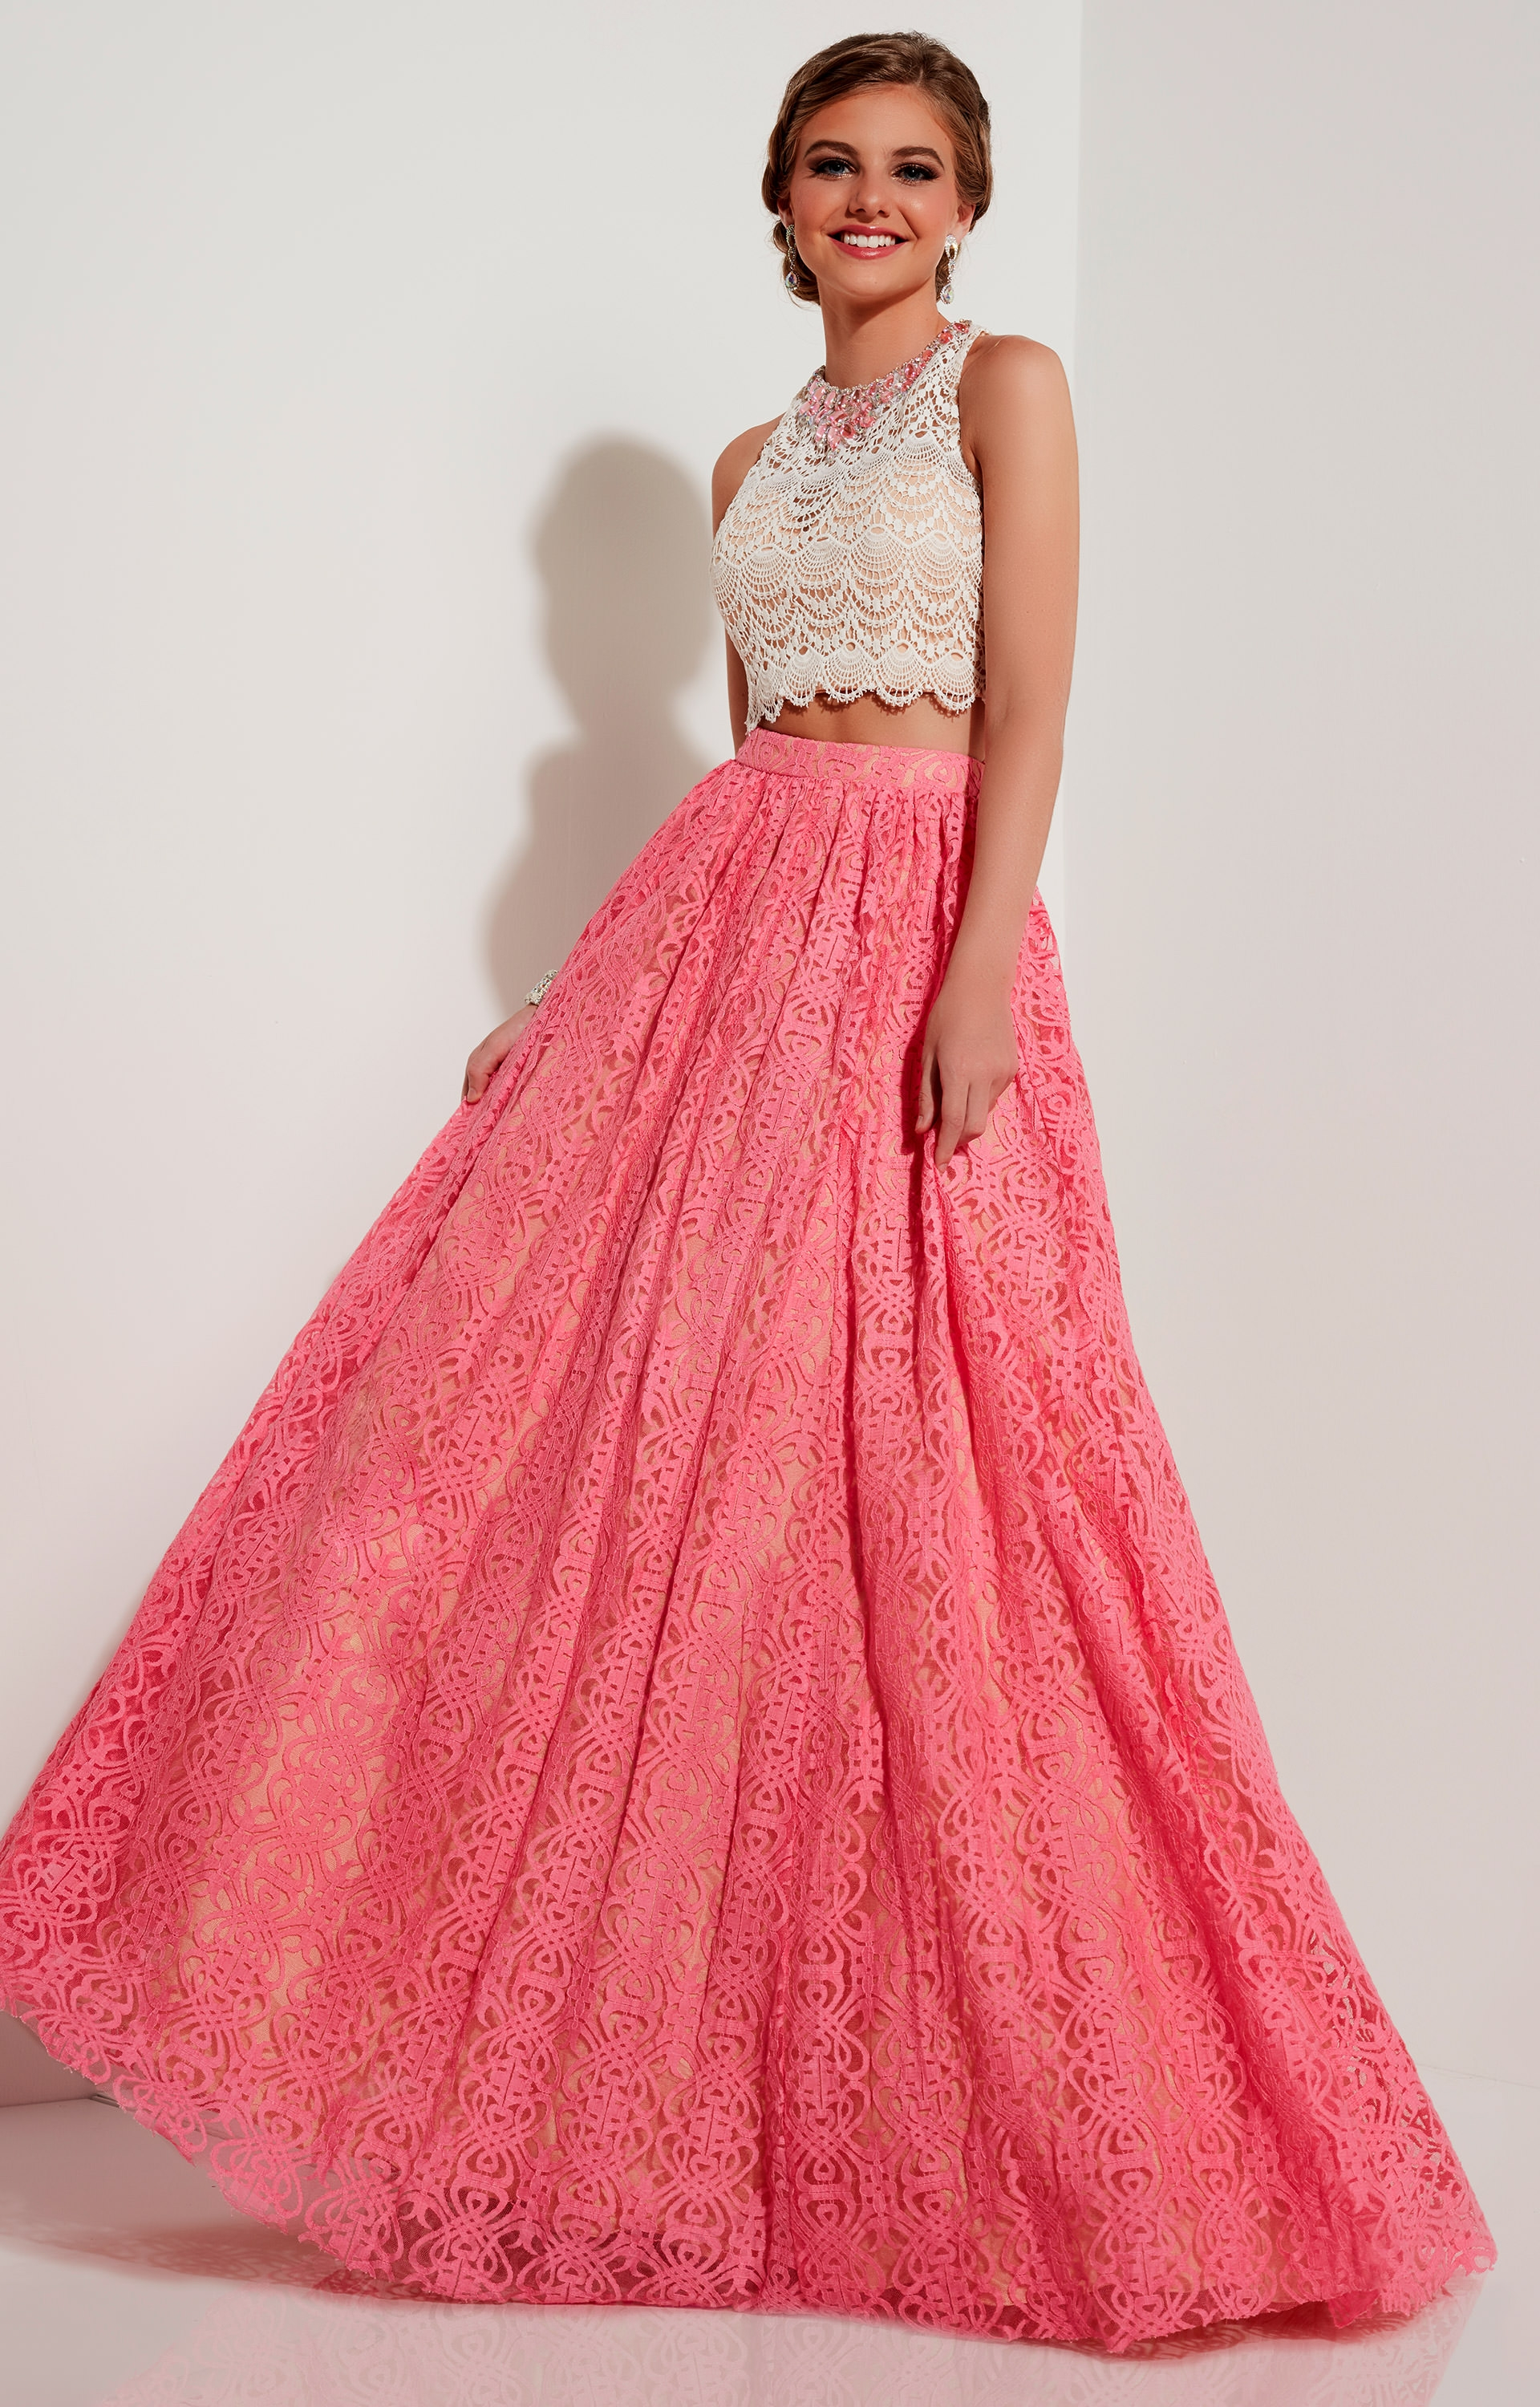 Studio 17 12617 - Crochet Lace Two Piece Ballgown Prom Dress